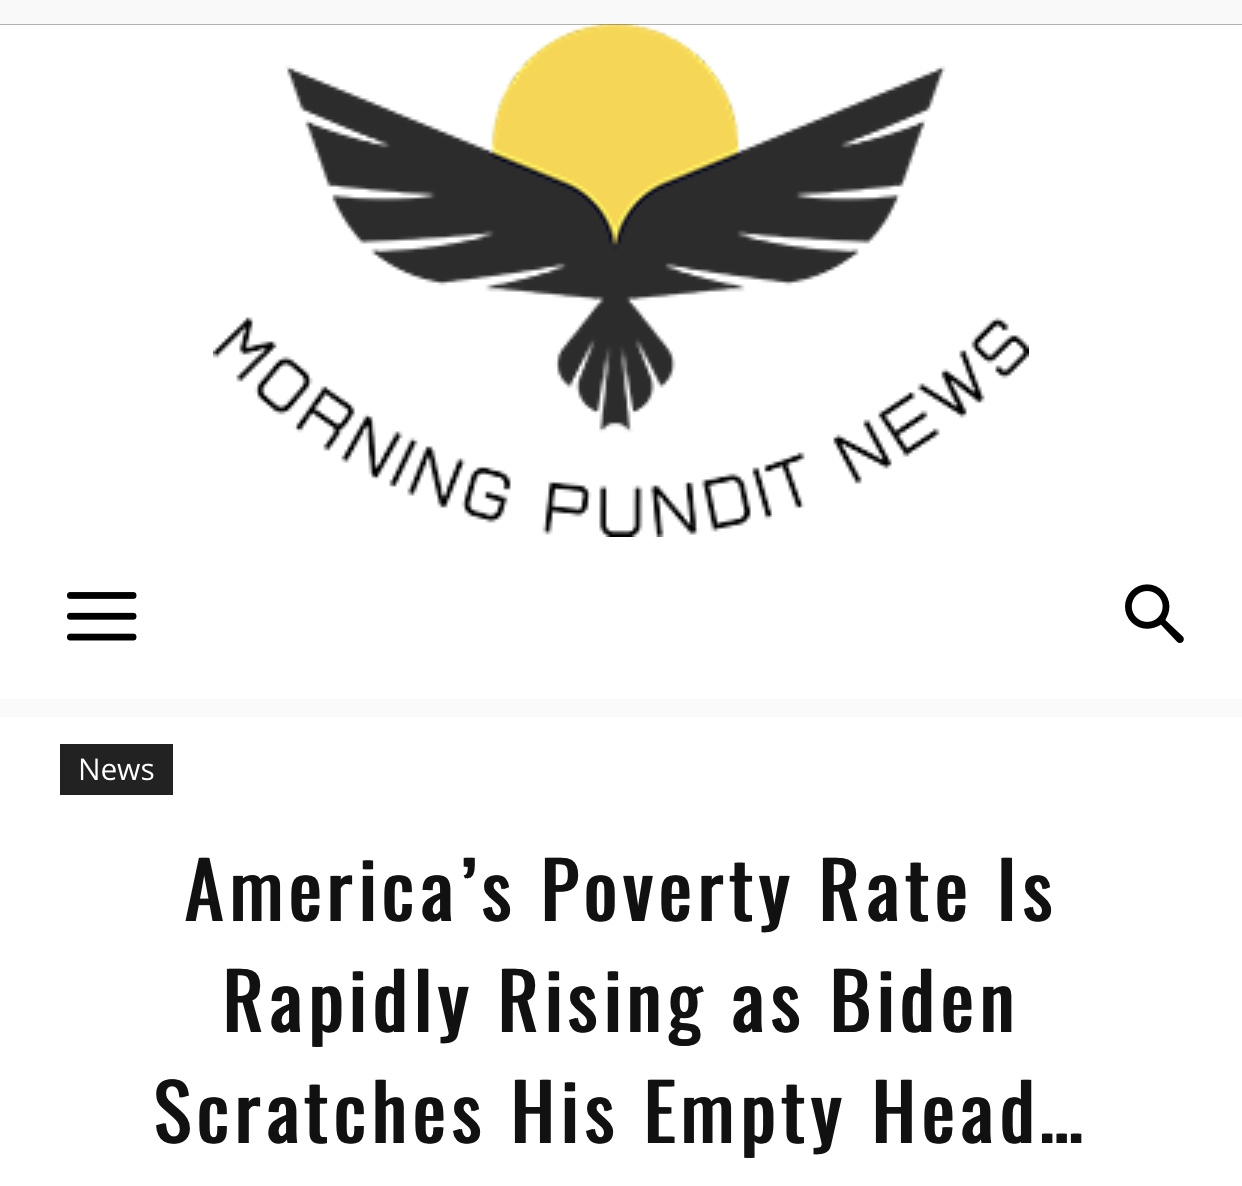 America's Poverty Rate Is Rapidly Rising as Biden Scratches His Empty Head…